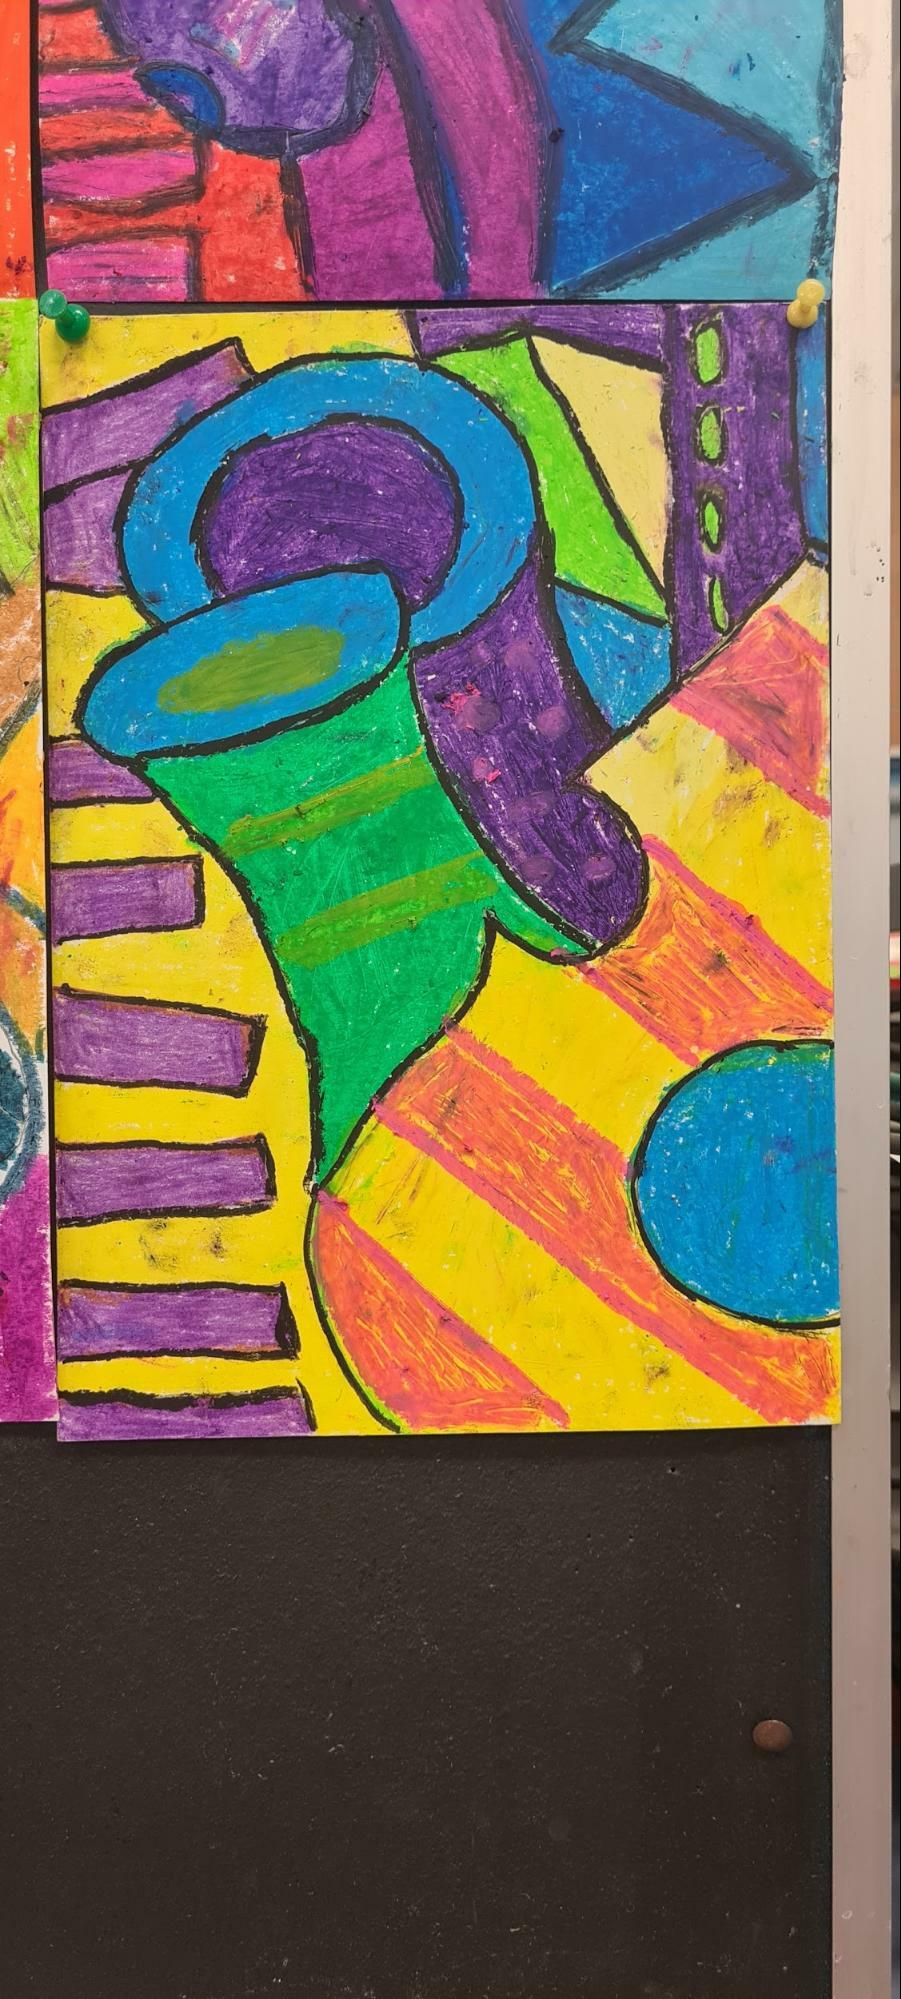 Year 7 Elements of Art 1